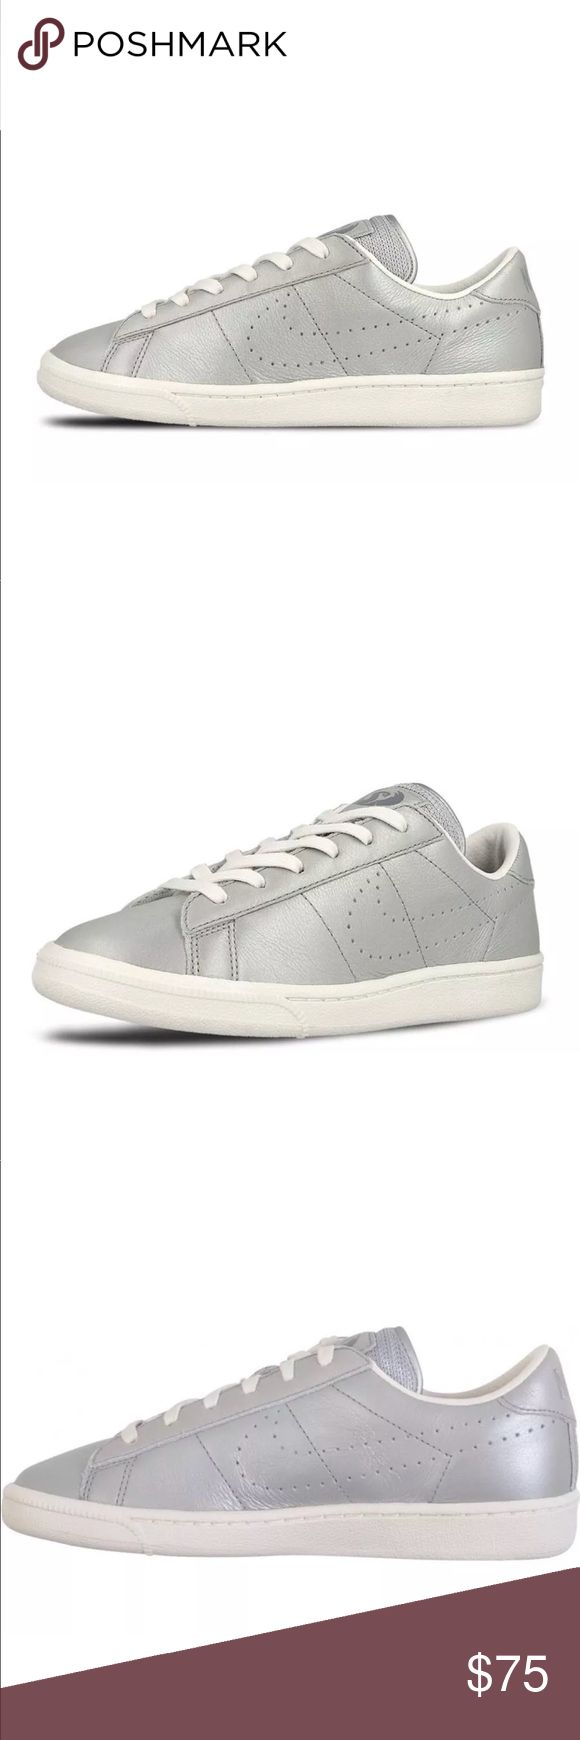 NIKE TENNIS CLASSIC PREMIUM WOMENS SHOES SILVER BRAND NEW WITHOUT BOX,  Listed in women's sizing ORDER YOUR WOMENS SHOE SIZE Conversion  5.5 YOUTH = 7 WOMENS  6 YOUTH = 7.5 WOMENS  6.5 YOUTH = 8 WOMENS  7 YOUTH = 8.5 WOMENS   ALL SIZES ARE LISTED ACCORDING TO NIKES SIZE CHART WHICH I ADDED ABOVE FOR YOUR Convenience.   Ships same day or next.  Price is firm.  100% authentic & direct from Nike Nike Shoes Sneakers